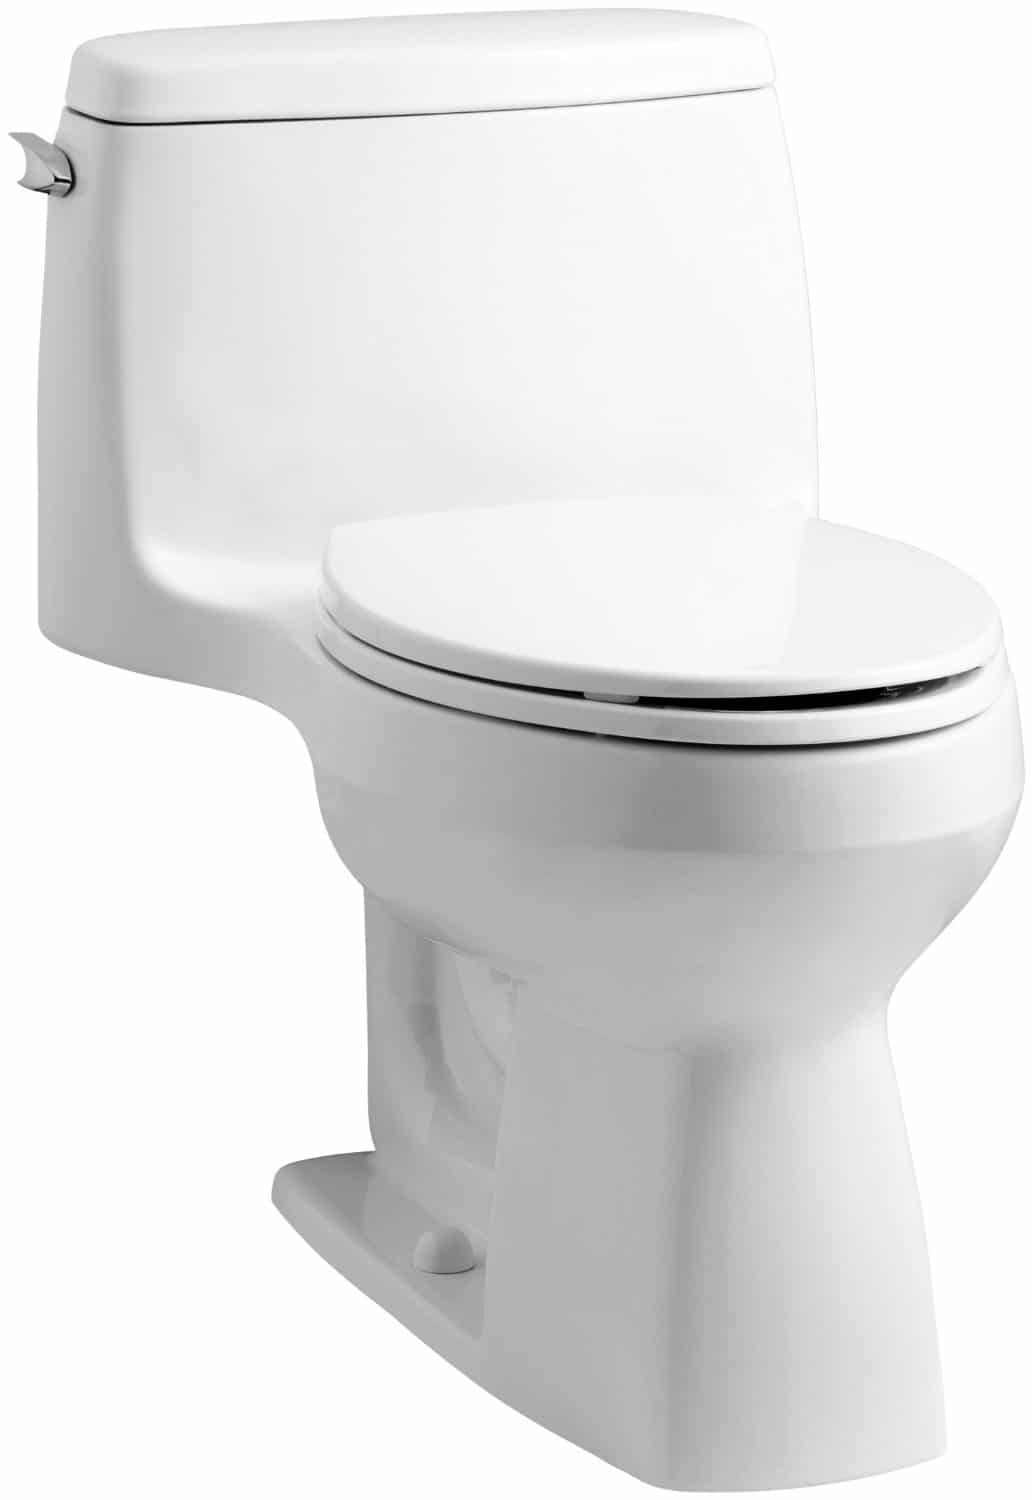 Best compact toilets for small bathrooms reviews the for Best bathrooms reviews